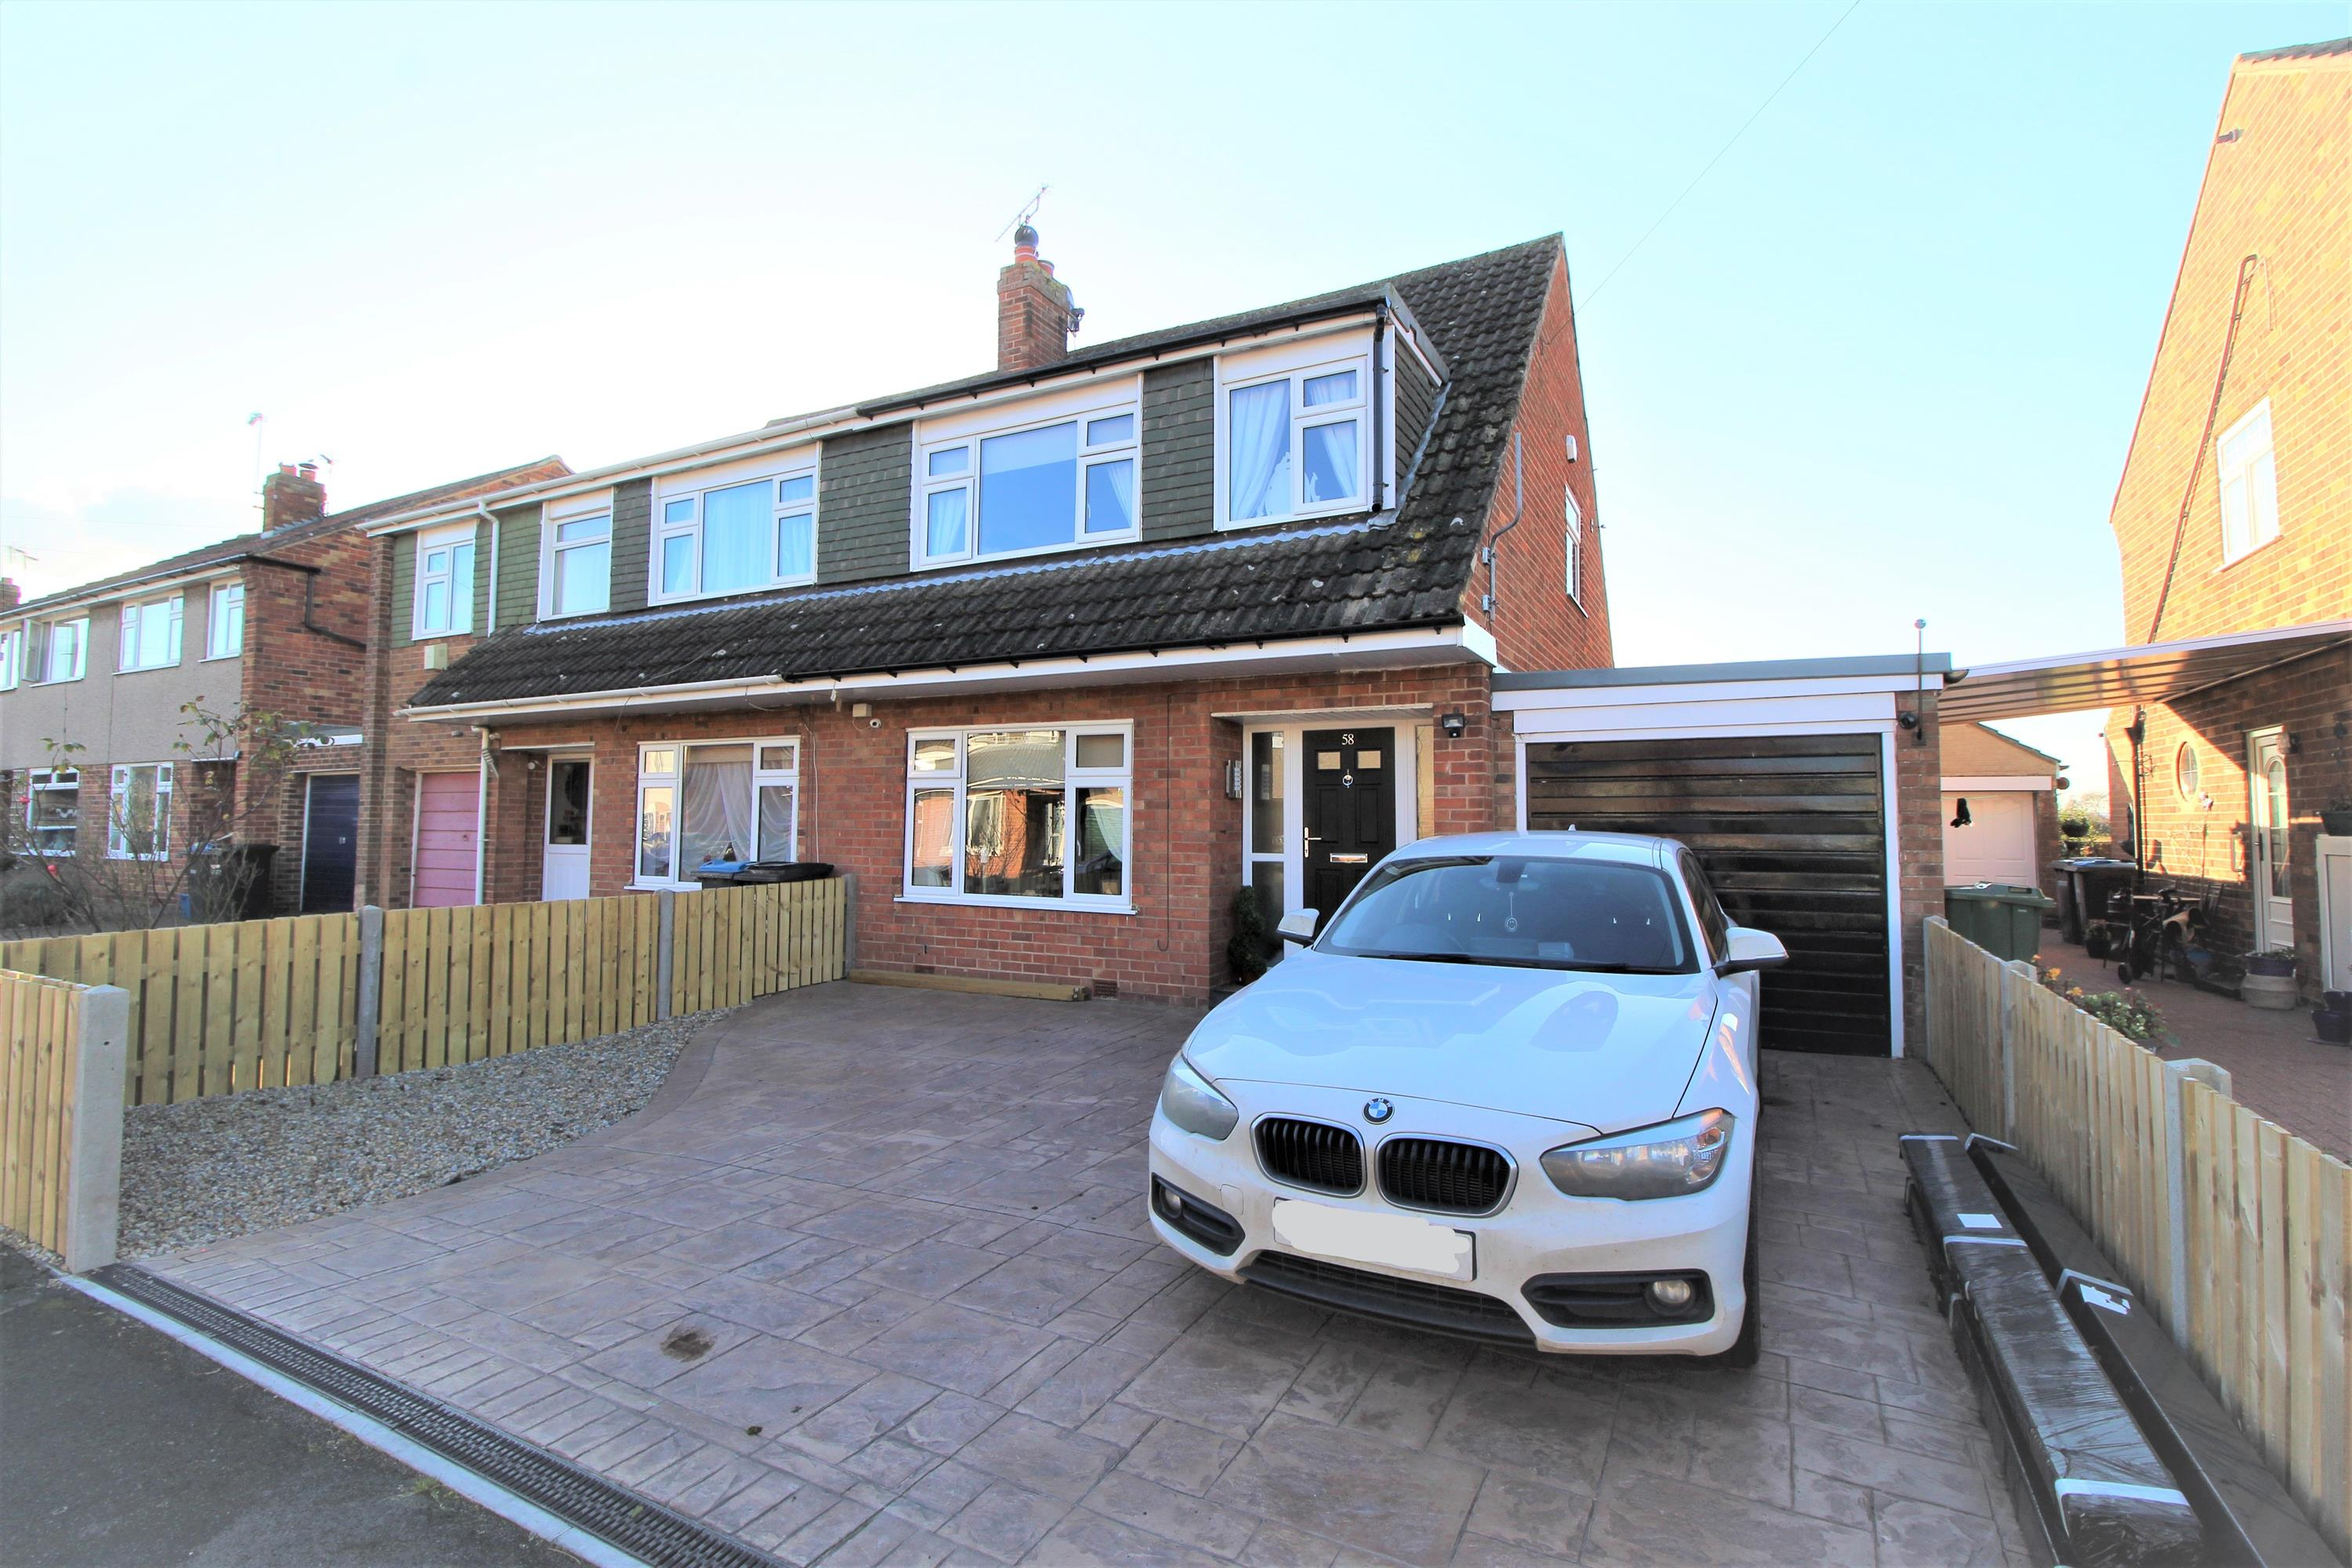 Saxty Way, Sowerby, Thirsk, YO7 1SB